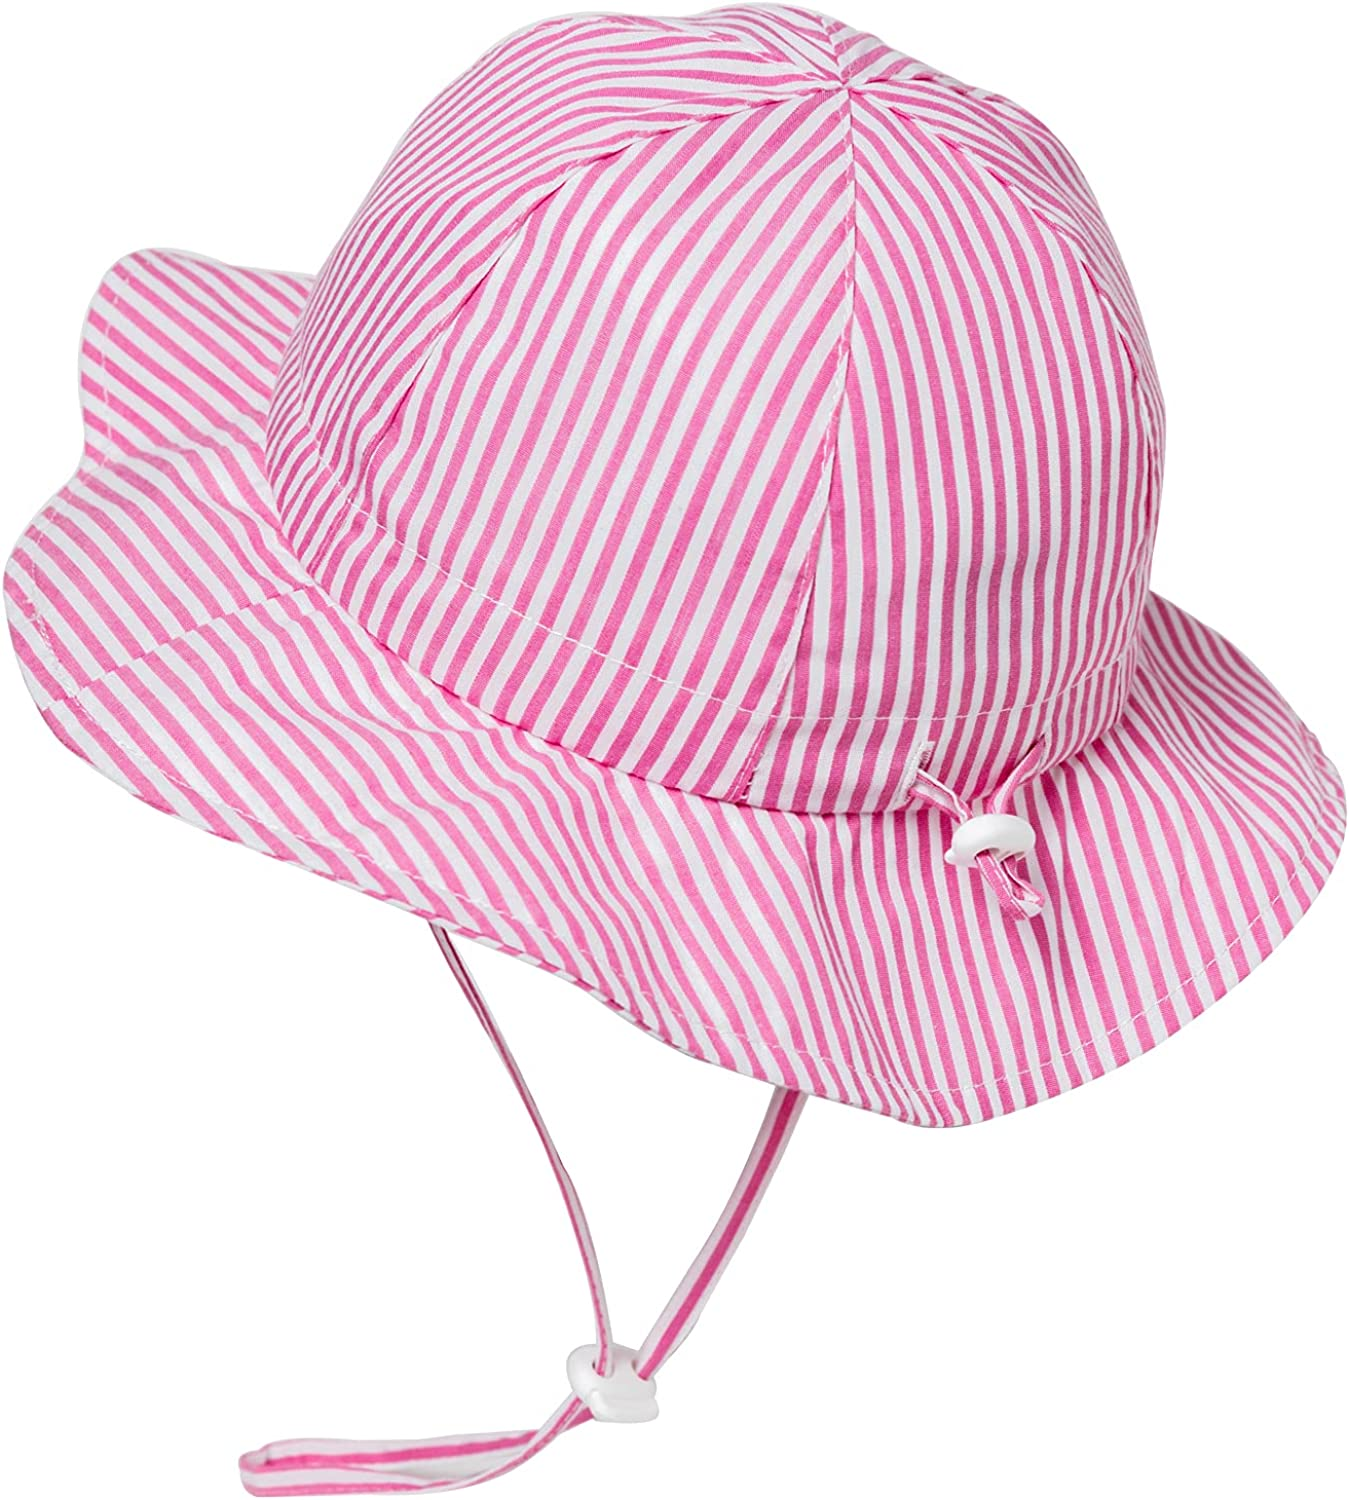 Comhats Baby Sun Hat,Infant hat,Toddlers Girls Boys Bucket hat Summer Beach UPF Packable Adjustable 100% Cotton for Kids